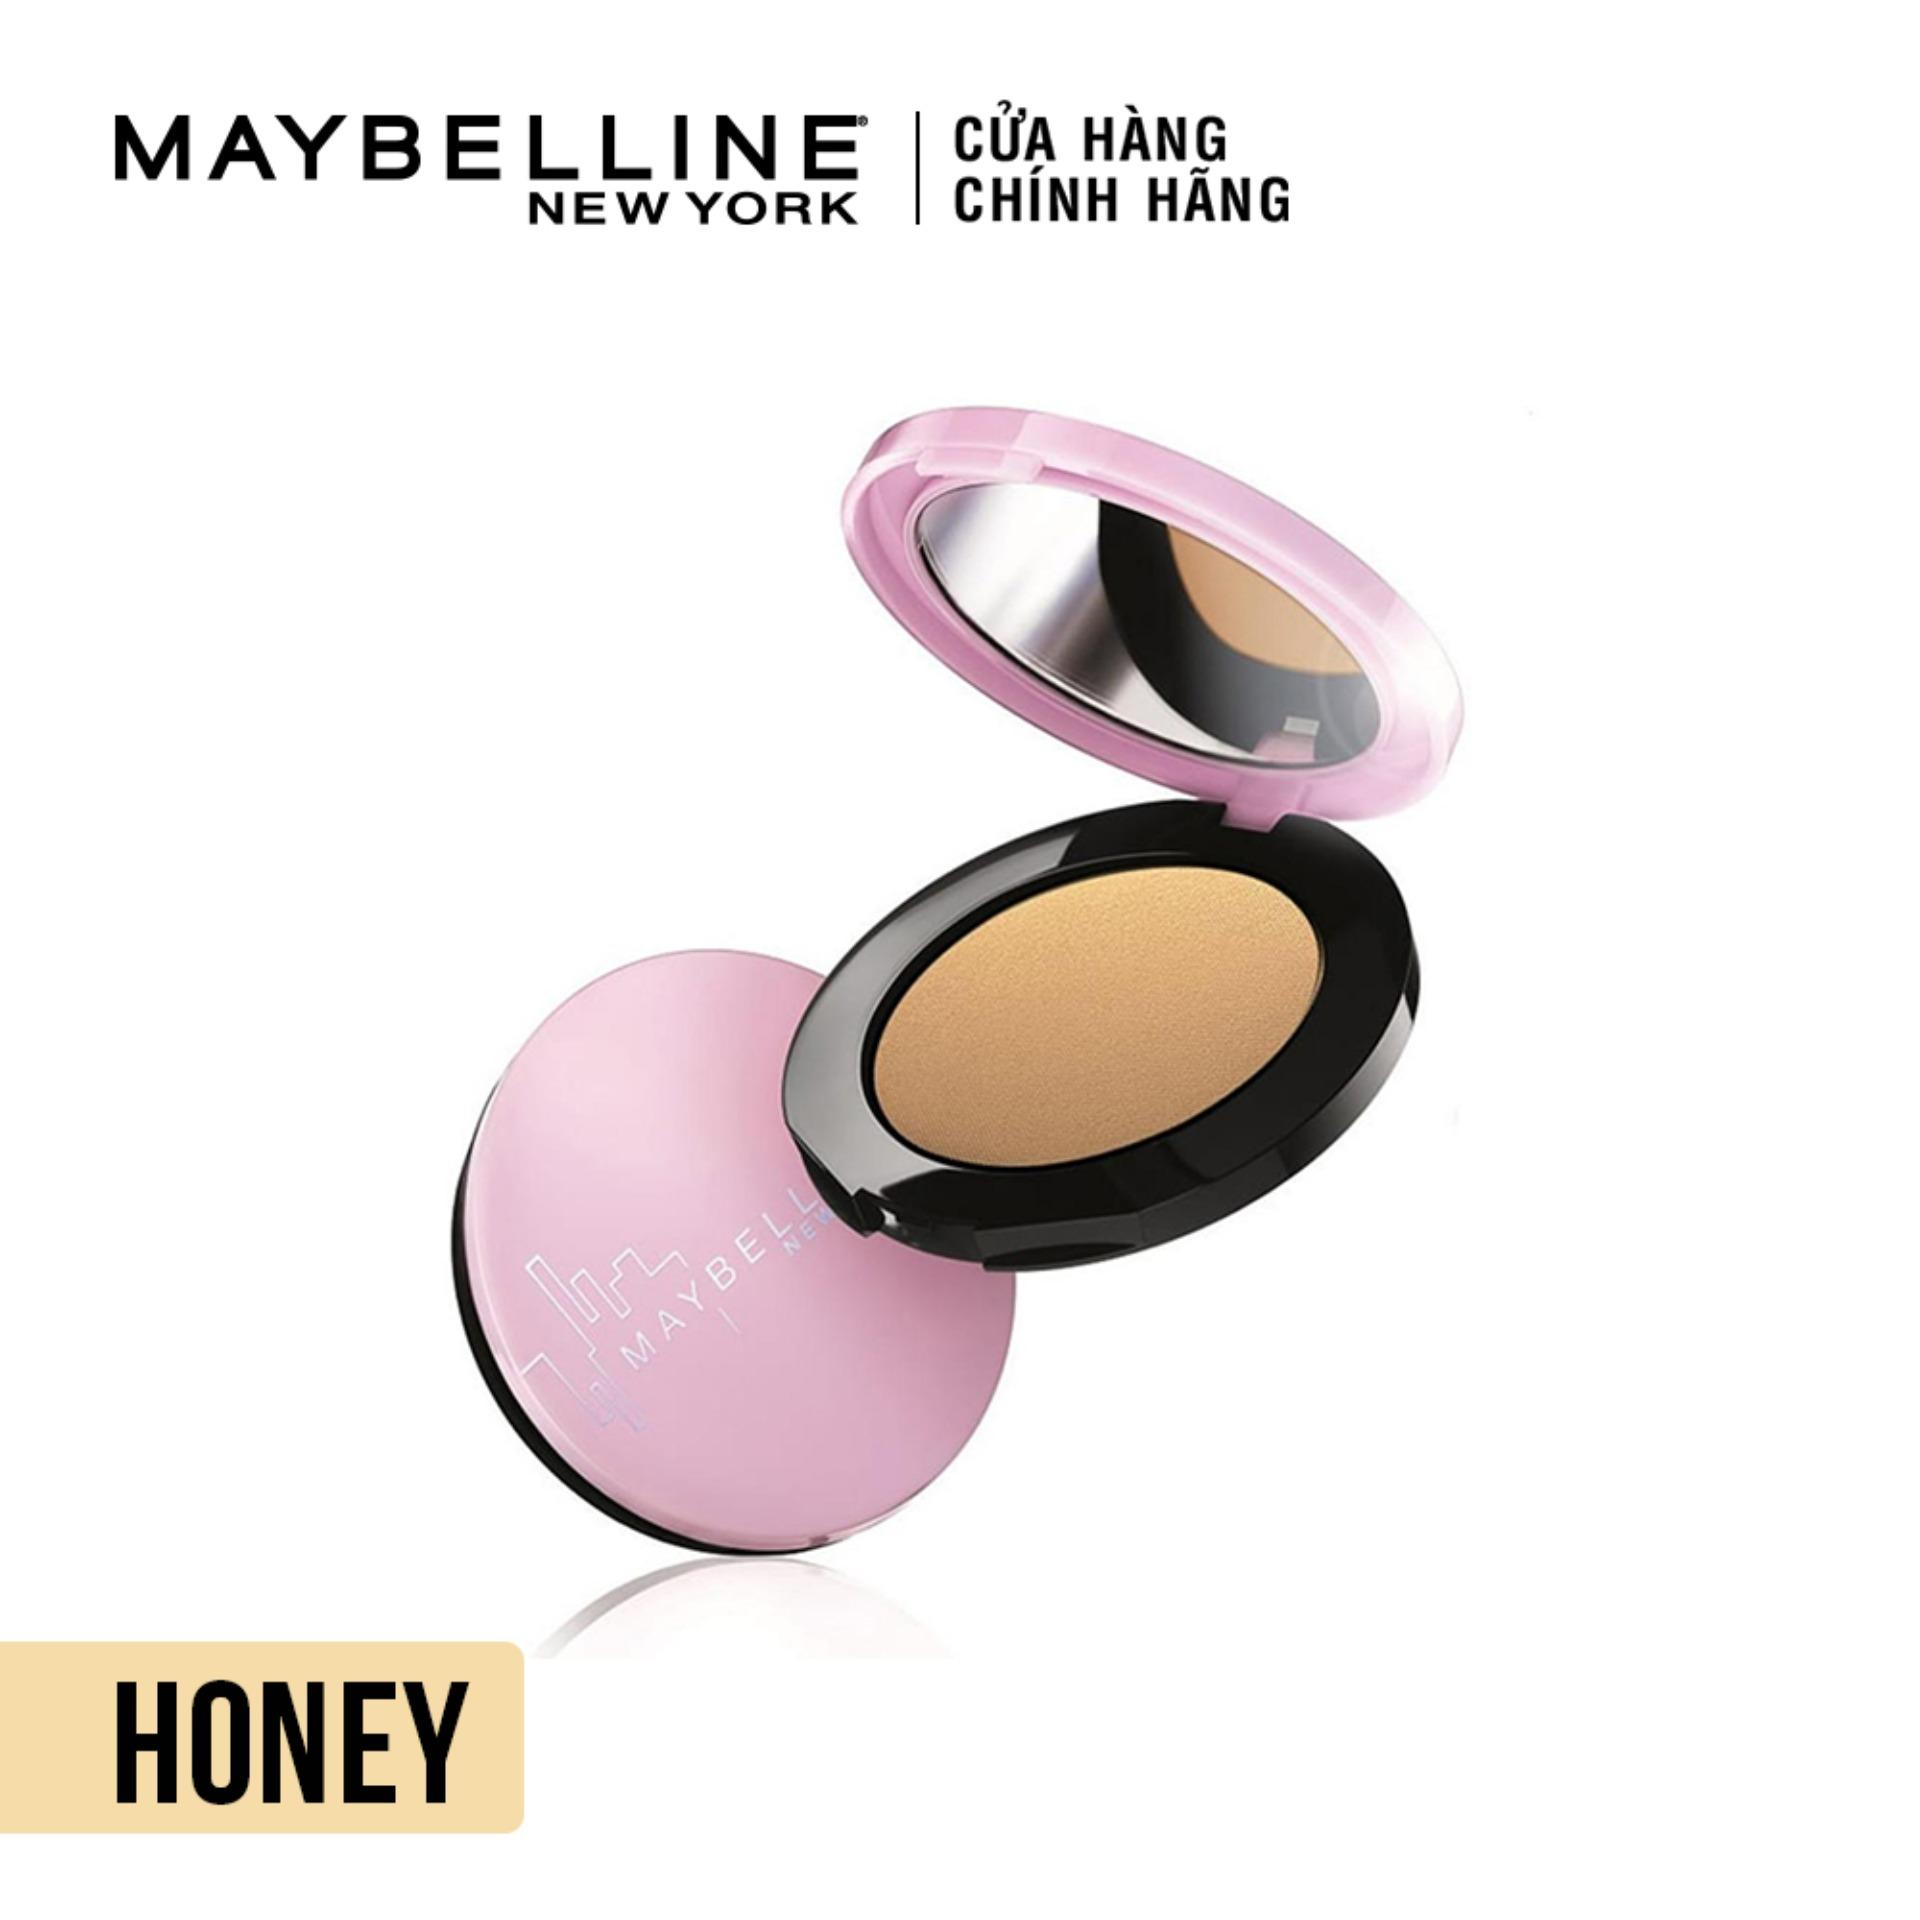 Phấn phủ mịn da chống nhờn Maybelline Clear Smooth All in one powder 9g